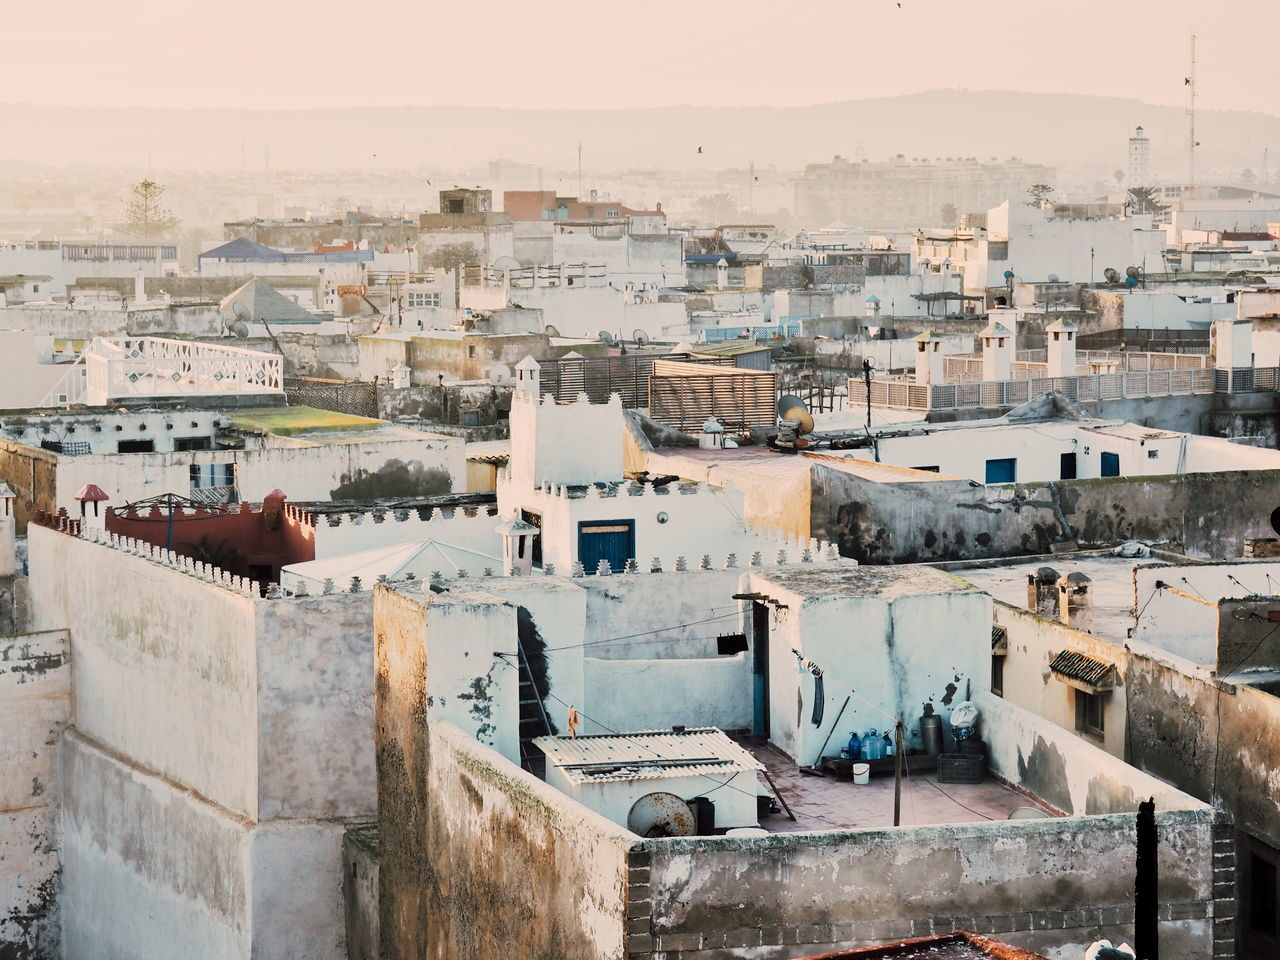 Cityscape City High Angle View Town Travel Residential Building Travel Destinations Architecture Roof History House Outdoors Urban Skyline Ecosystem  No People Building Terrace Essaouira Morocco Rooftop Rooftop View  Golden Hour Morning Light City Sunrise Travel Photography